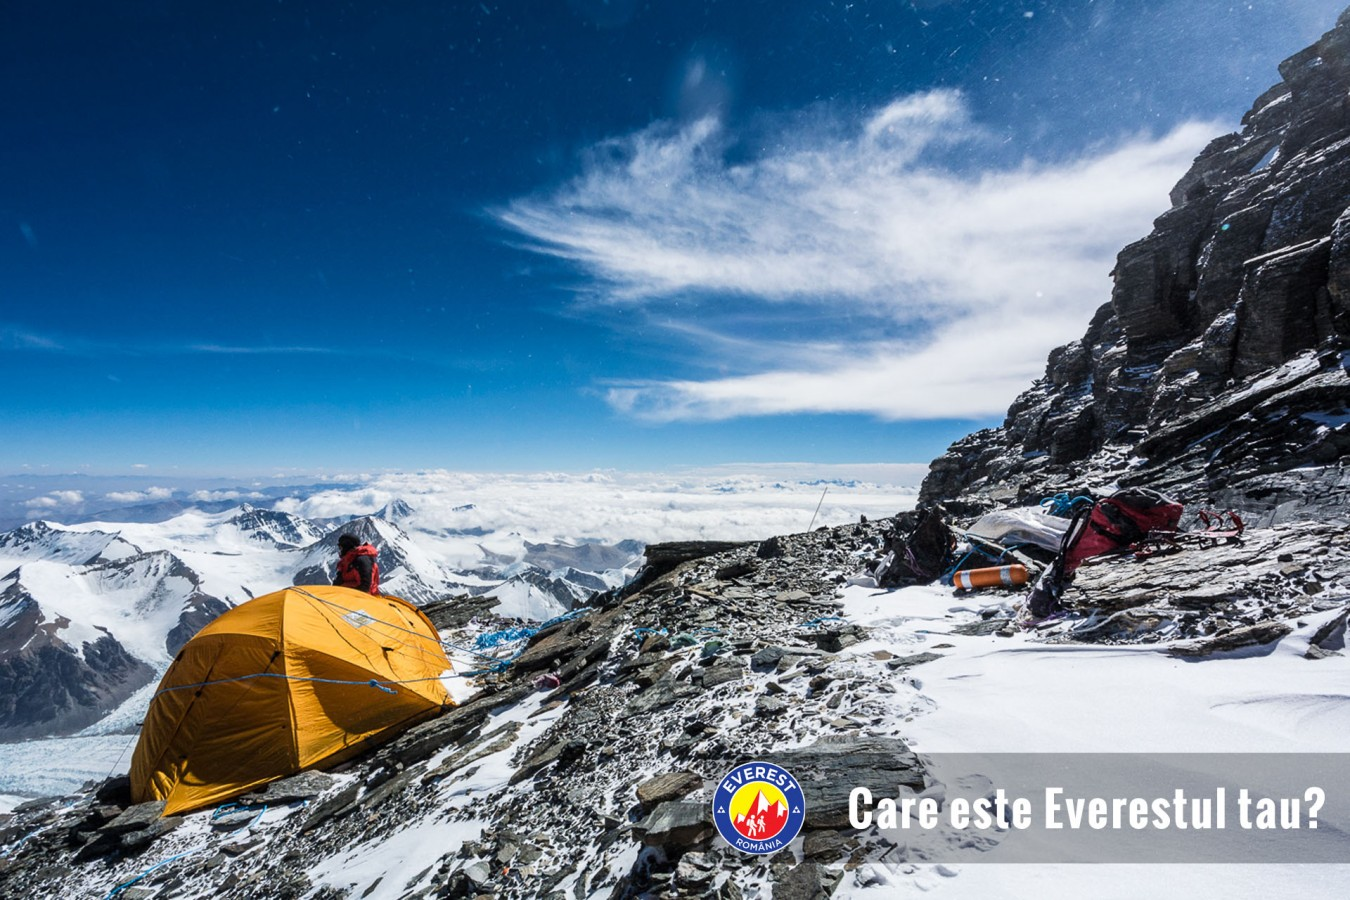 10 Business principles explored at over 8000m in the Himalayas